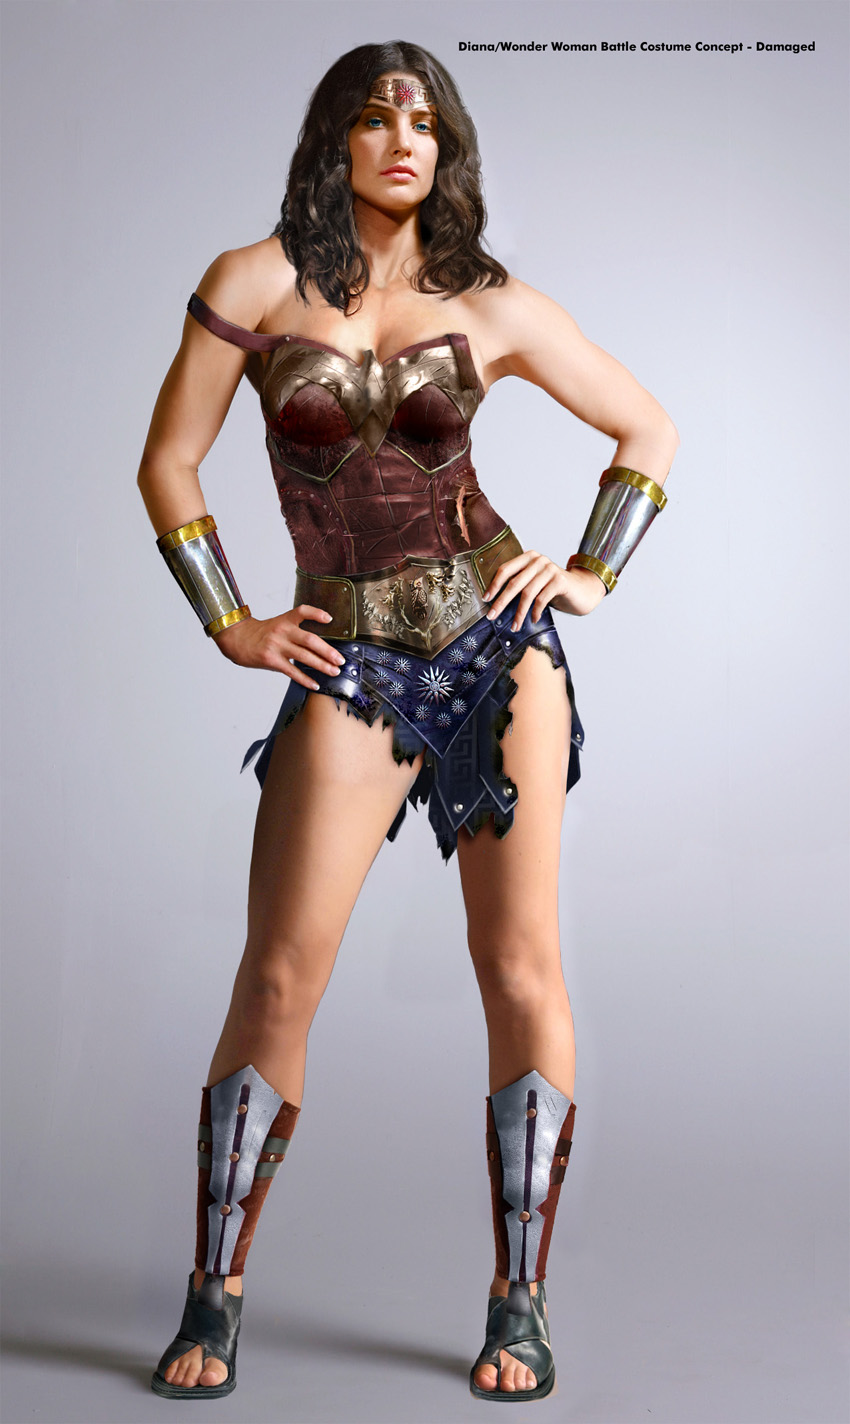 Superman vs Batman movie to feature Wonder Woman? - Page 8 - The ...